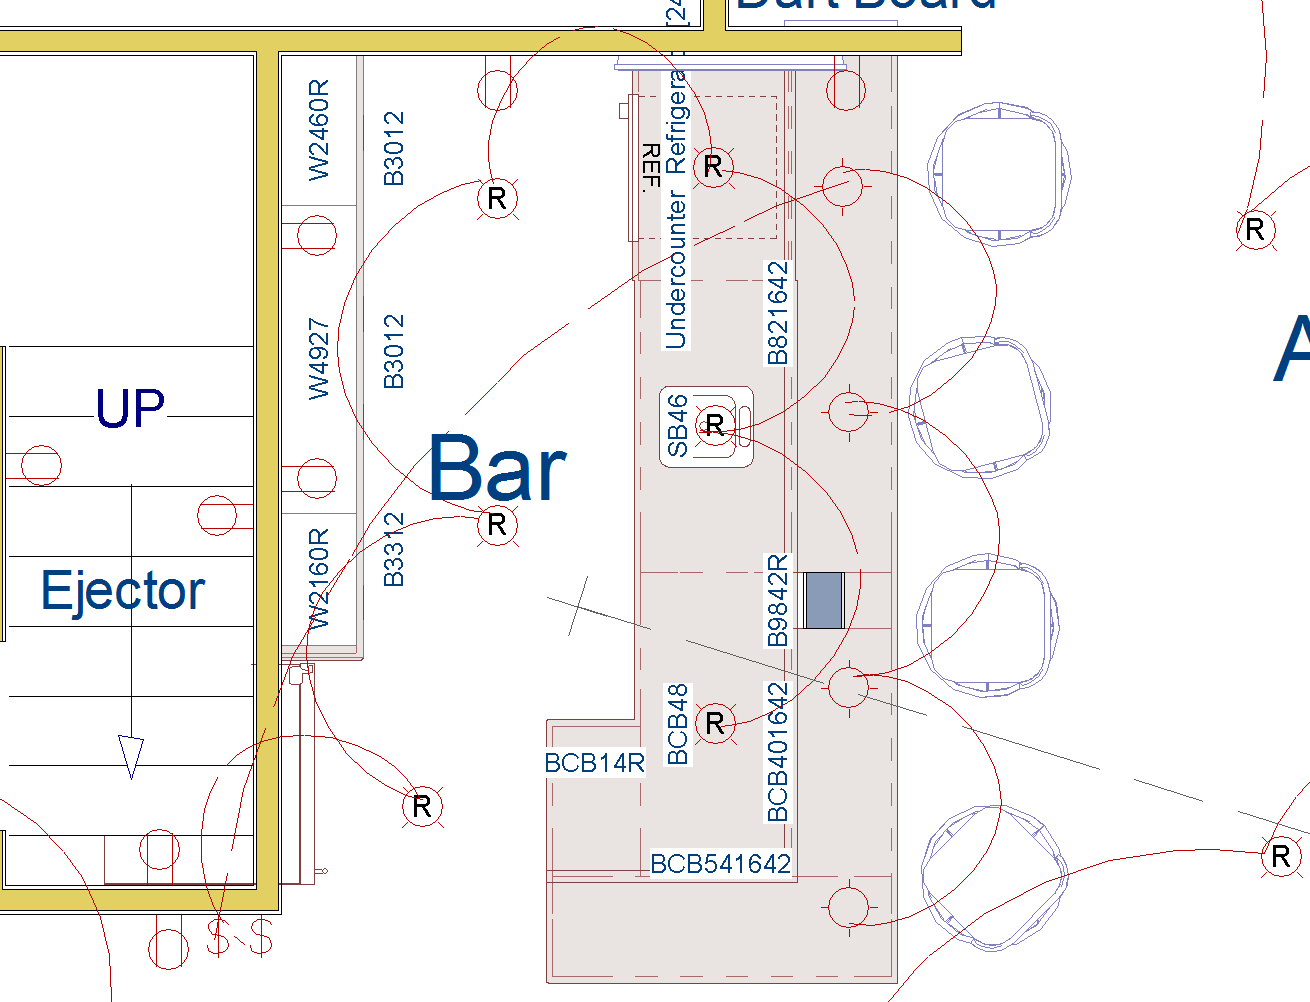 hight resolution of electrical plan for basement